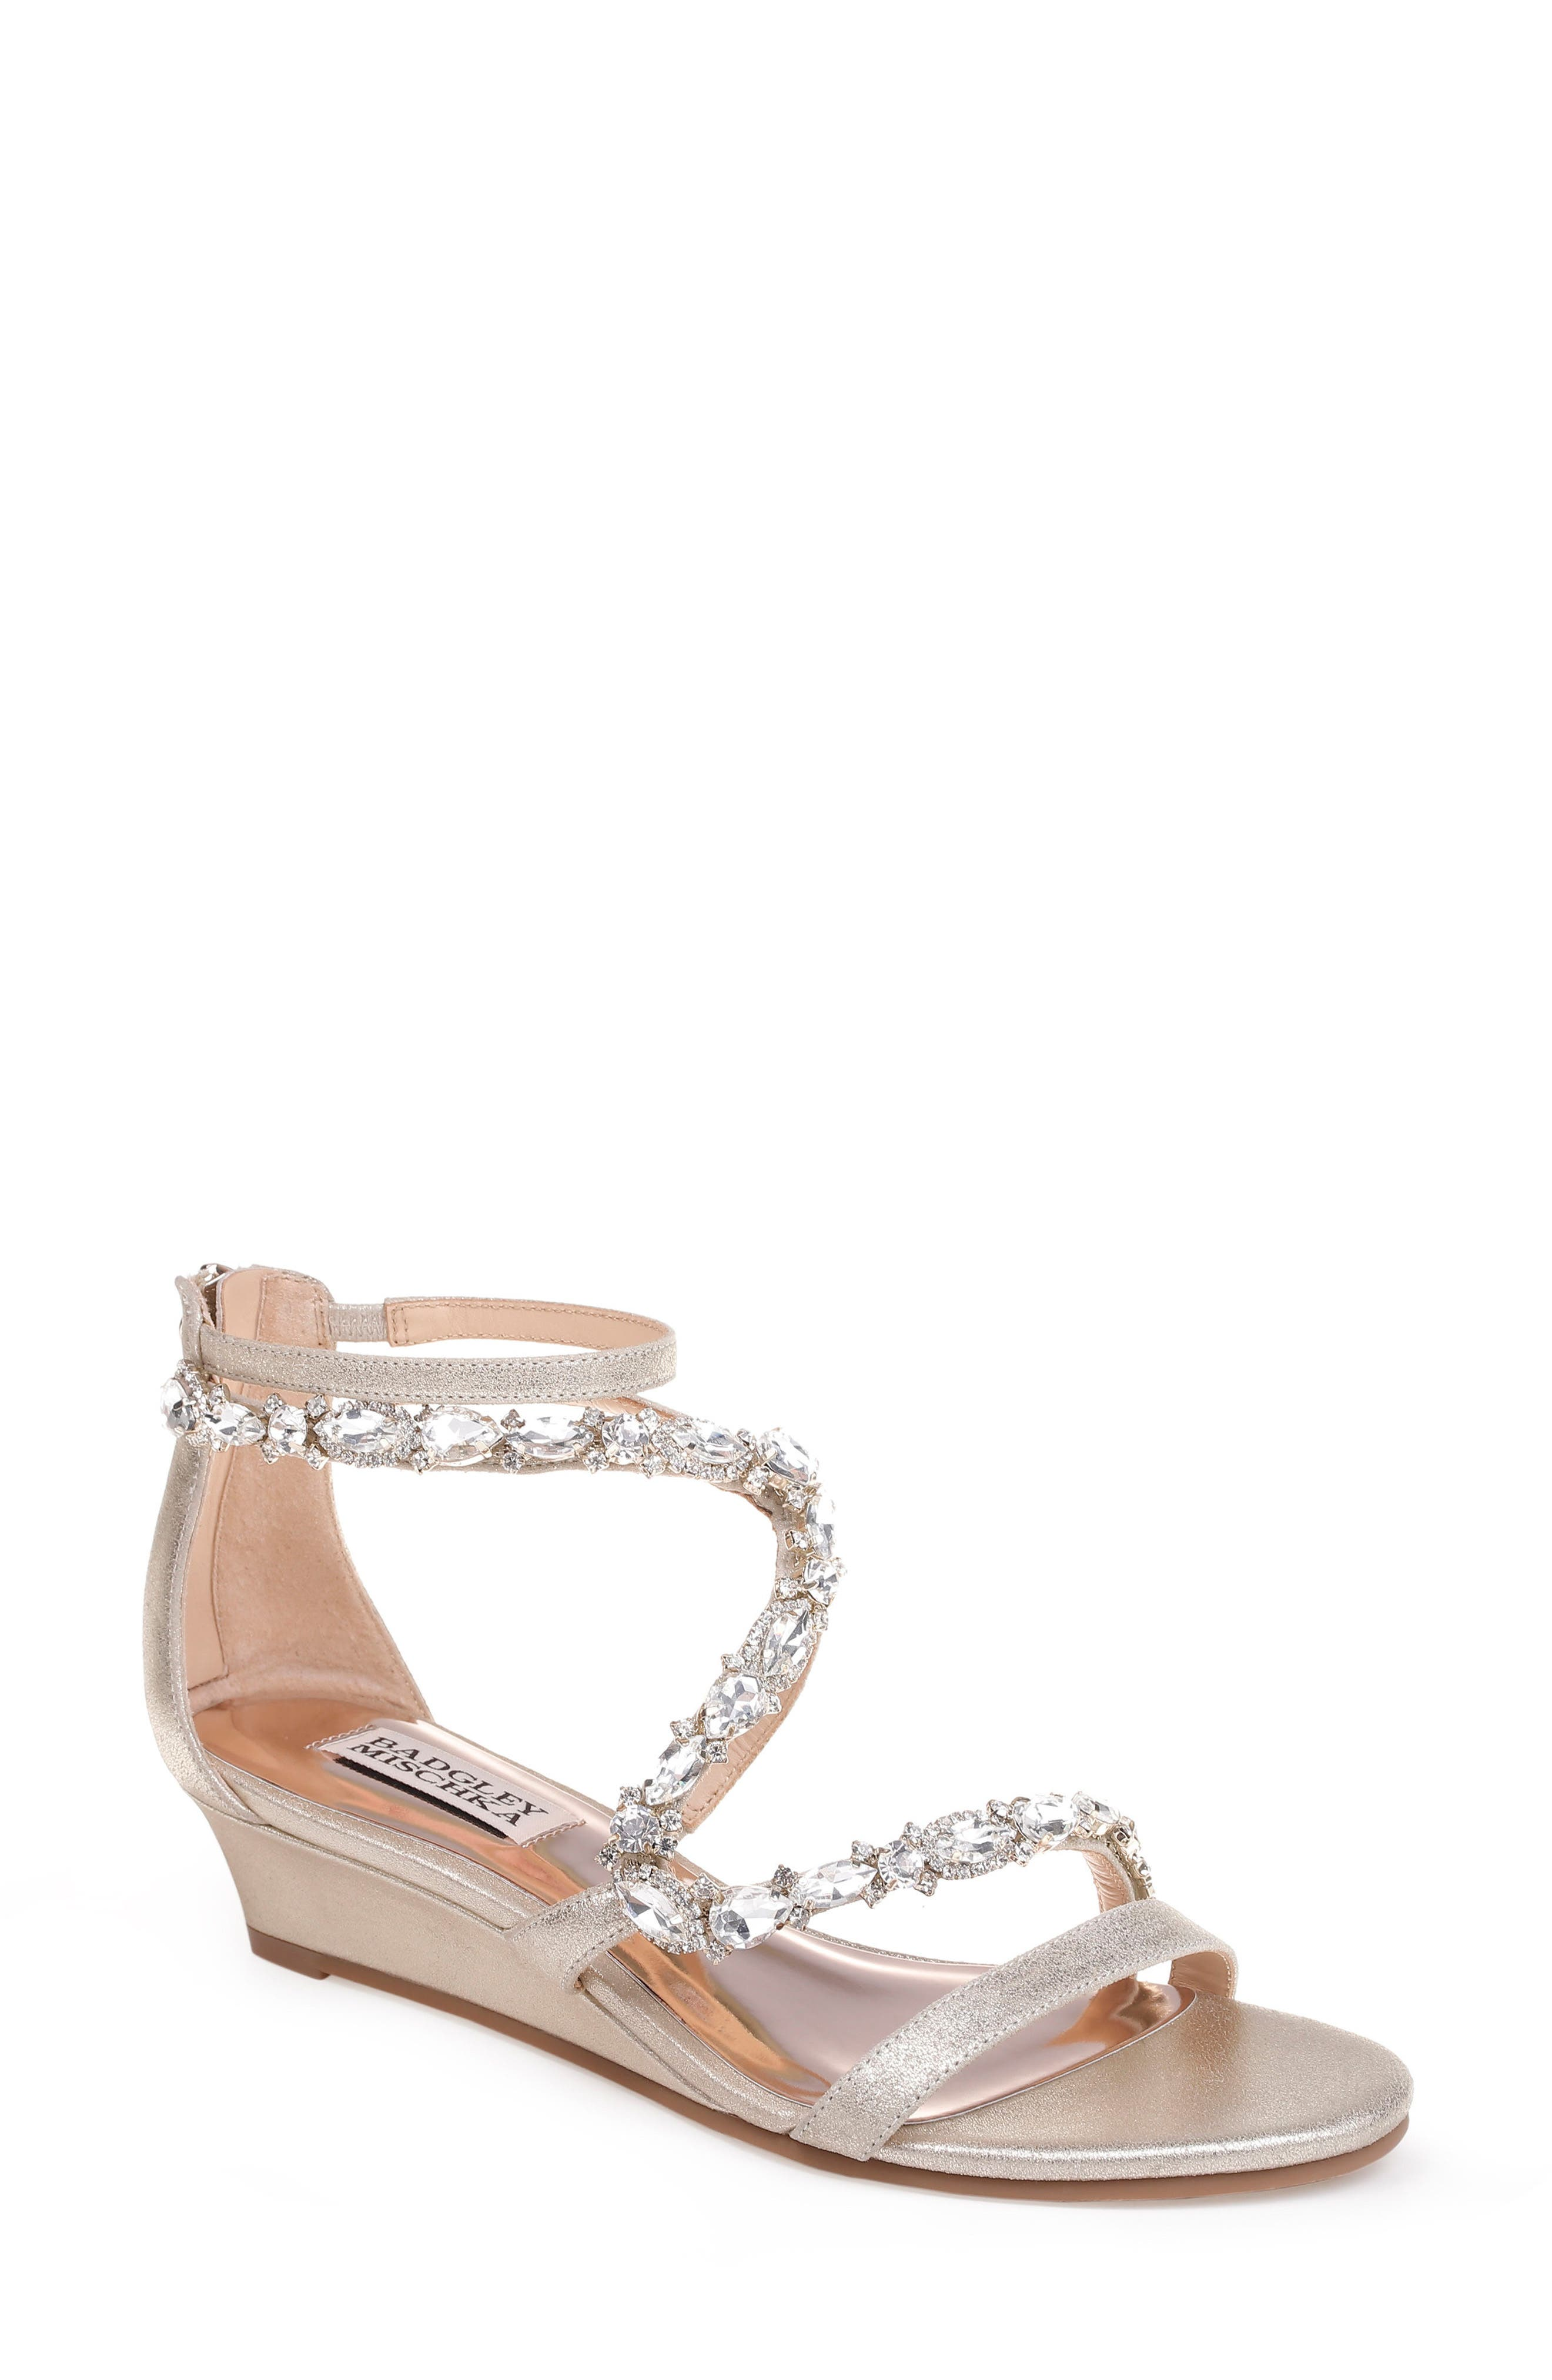 Sierra Strappy Wedge Sandal,                             Main thumbnail 3, color,